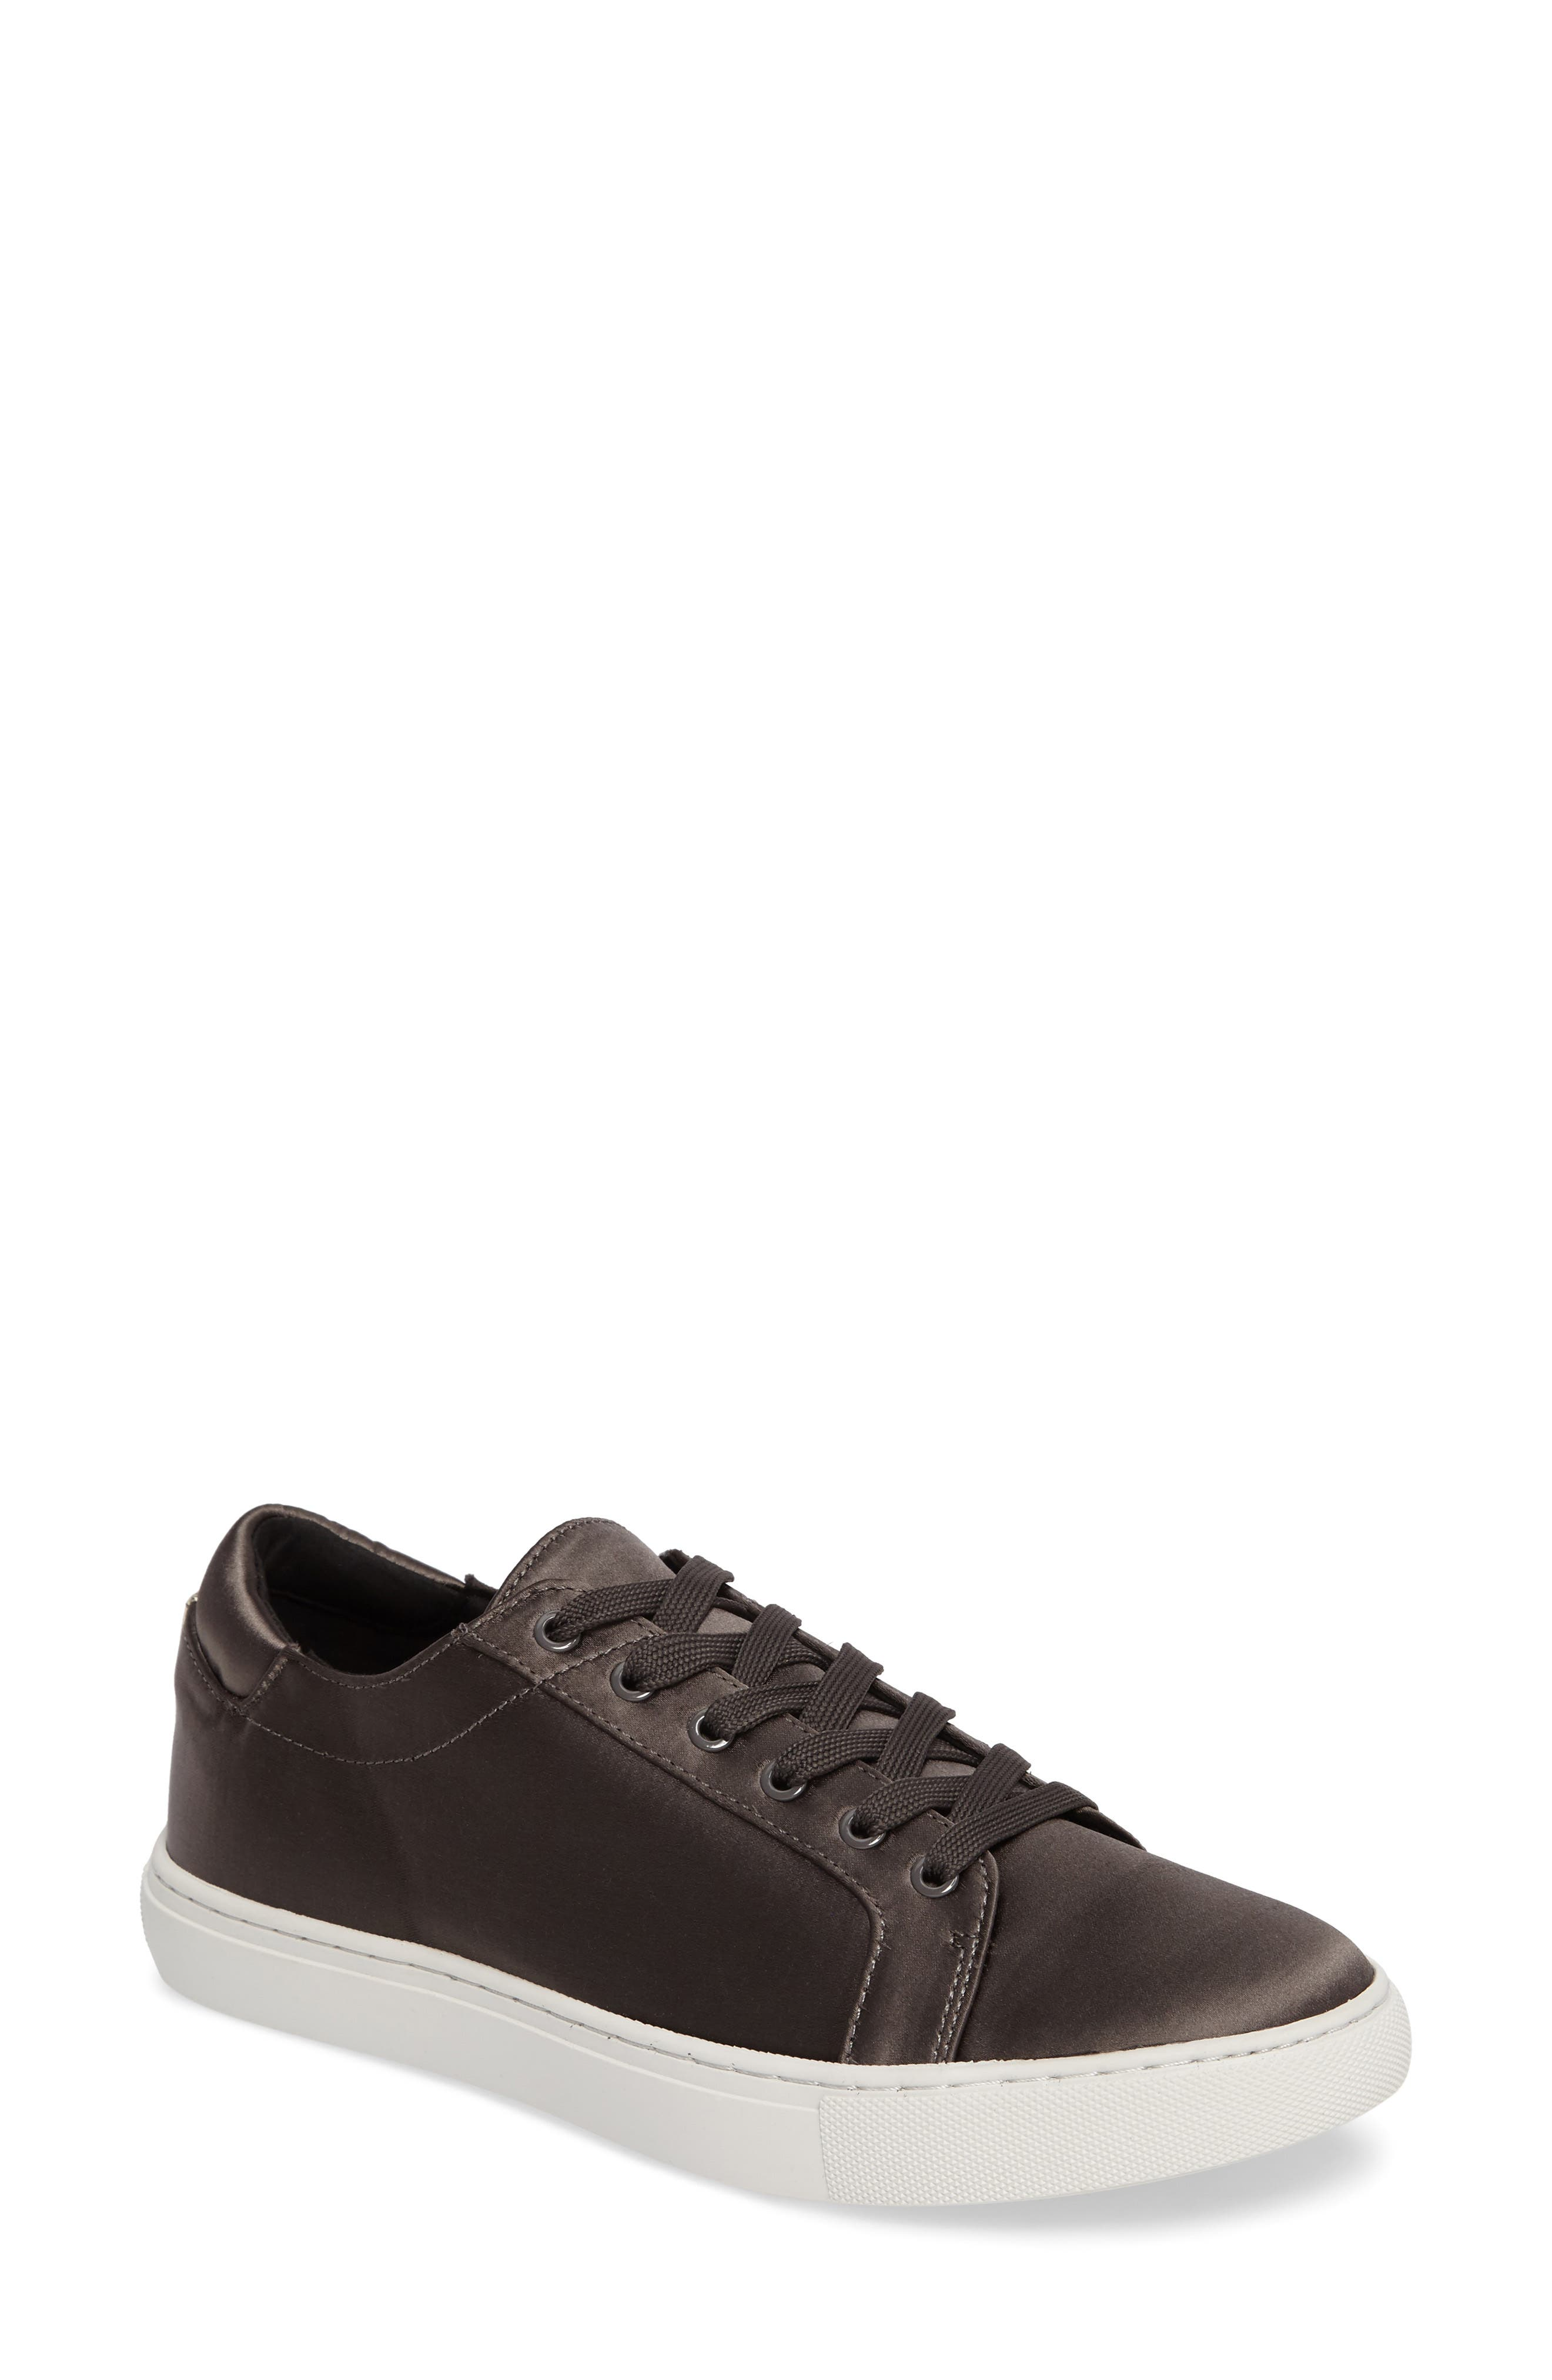 Alternate Image 1 Selected - Kenneth Cole New York 'Kam' Sneaker (Women)